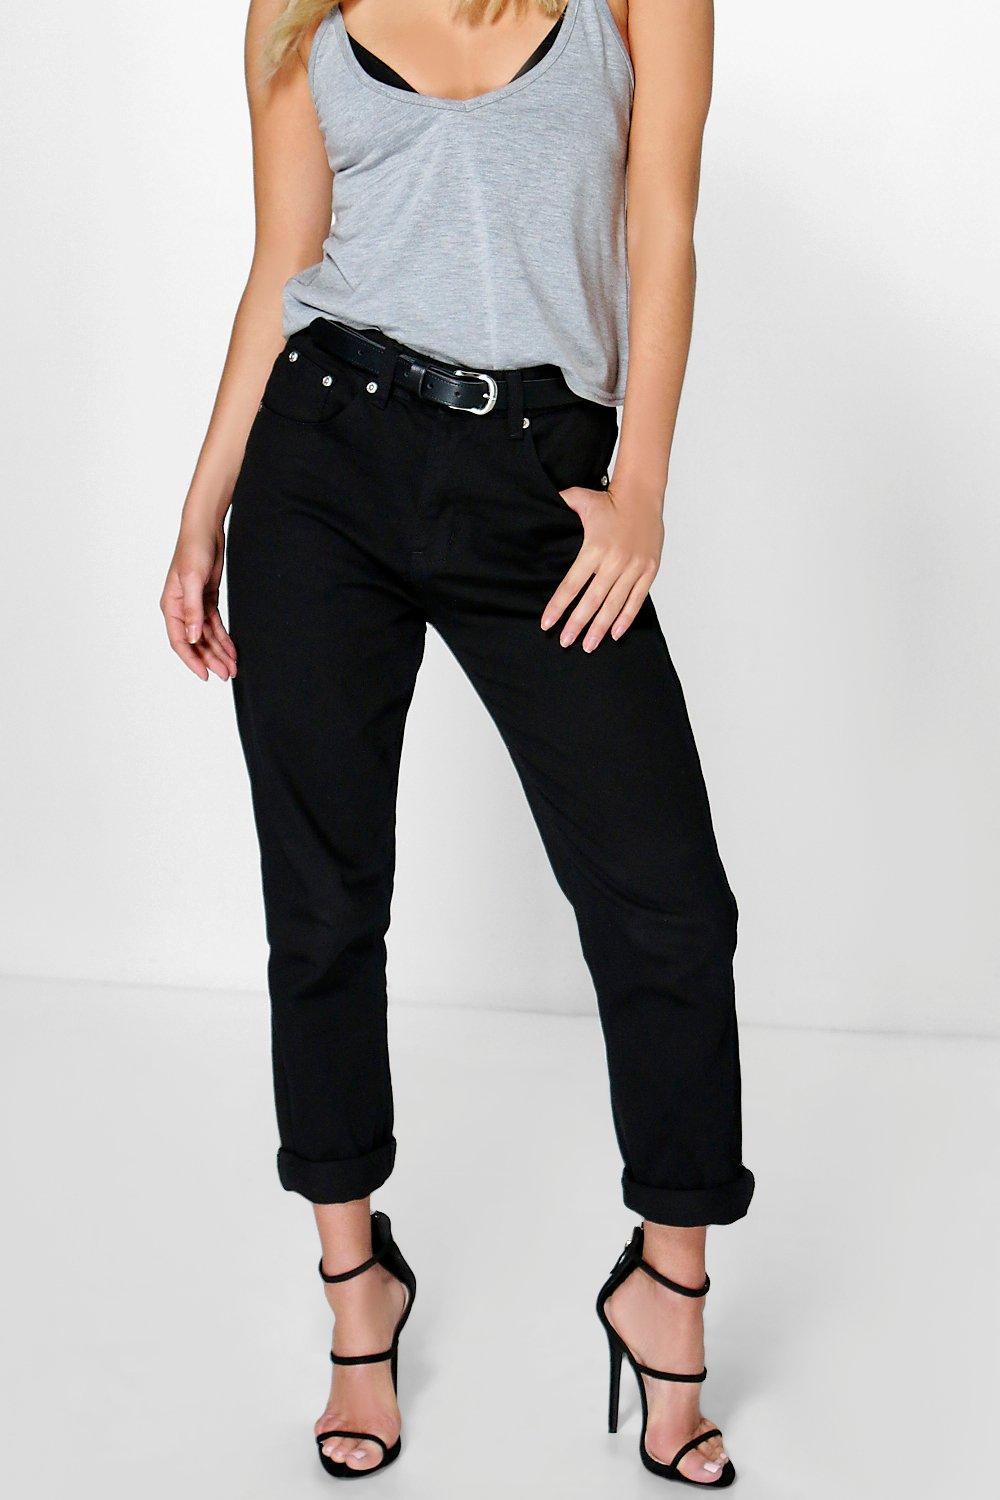 boohoo damen hatty schwarze boyfriend jeans mit hohem bund. Black Bedroom Furniture Sets. Home Design Ideas